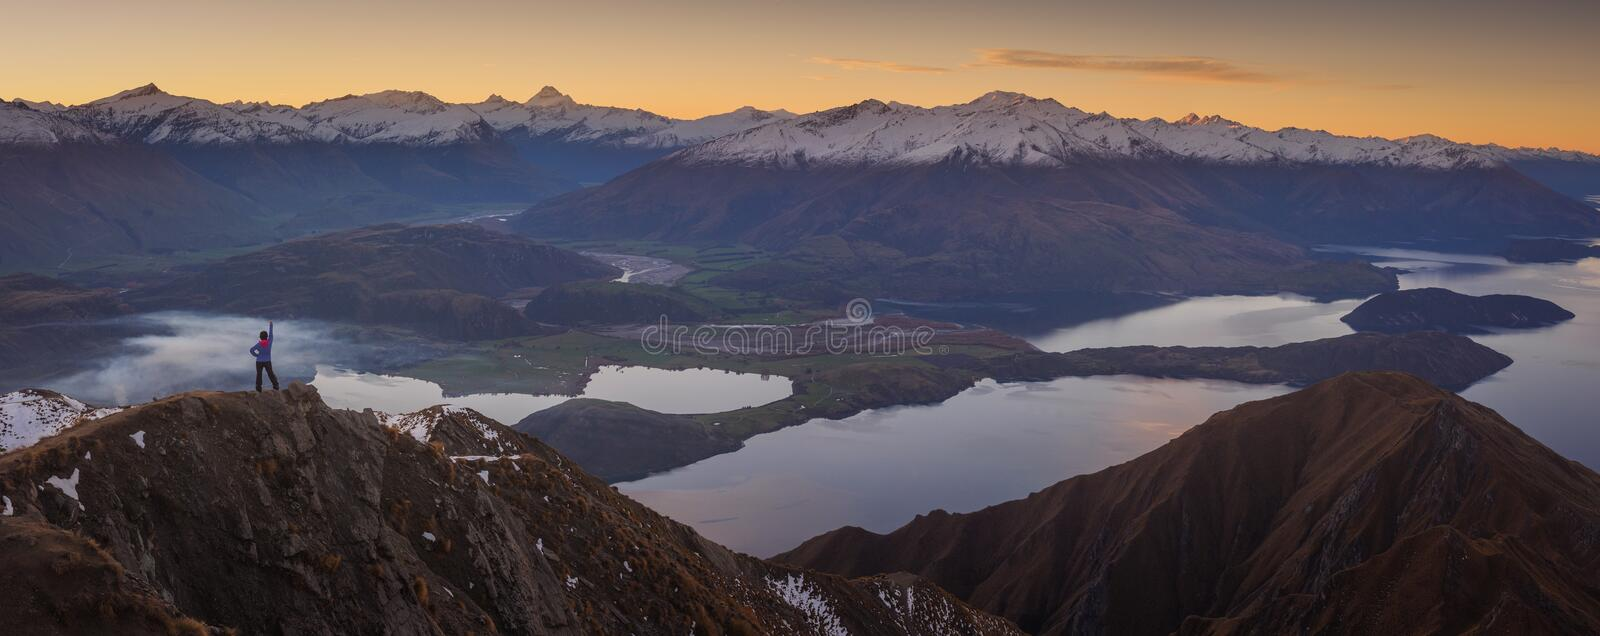 Woman hiker standing on a ledge of a mountain, enjoying the beautiful sunrise royalty free stock photography